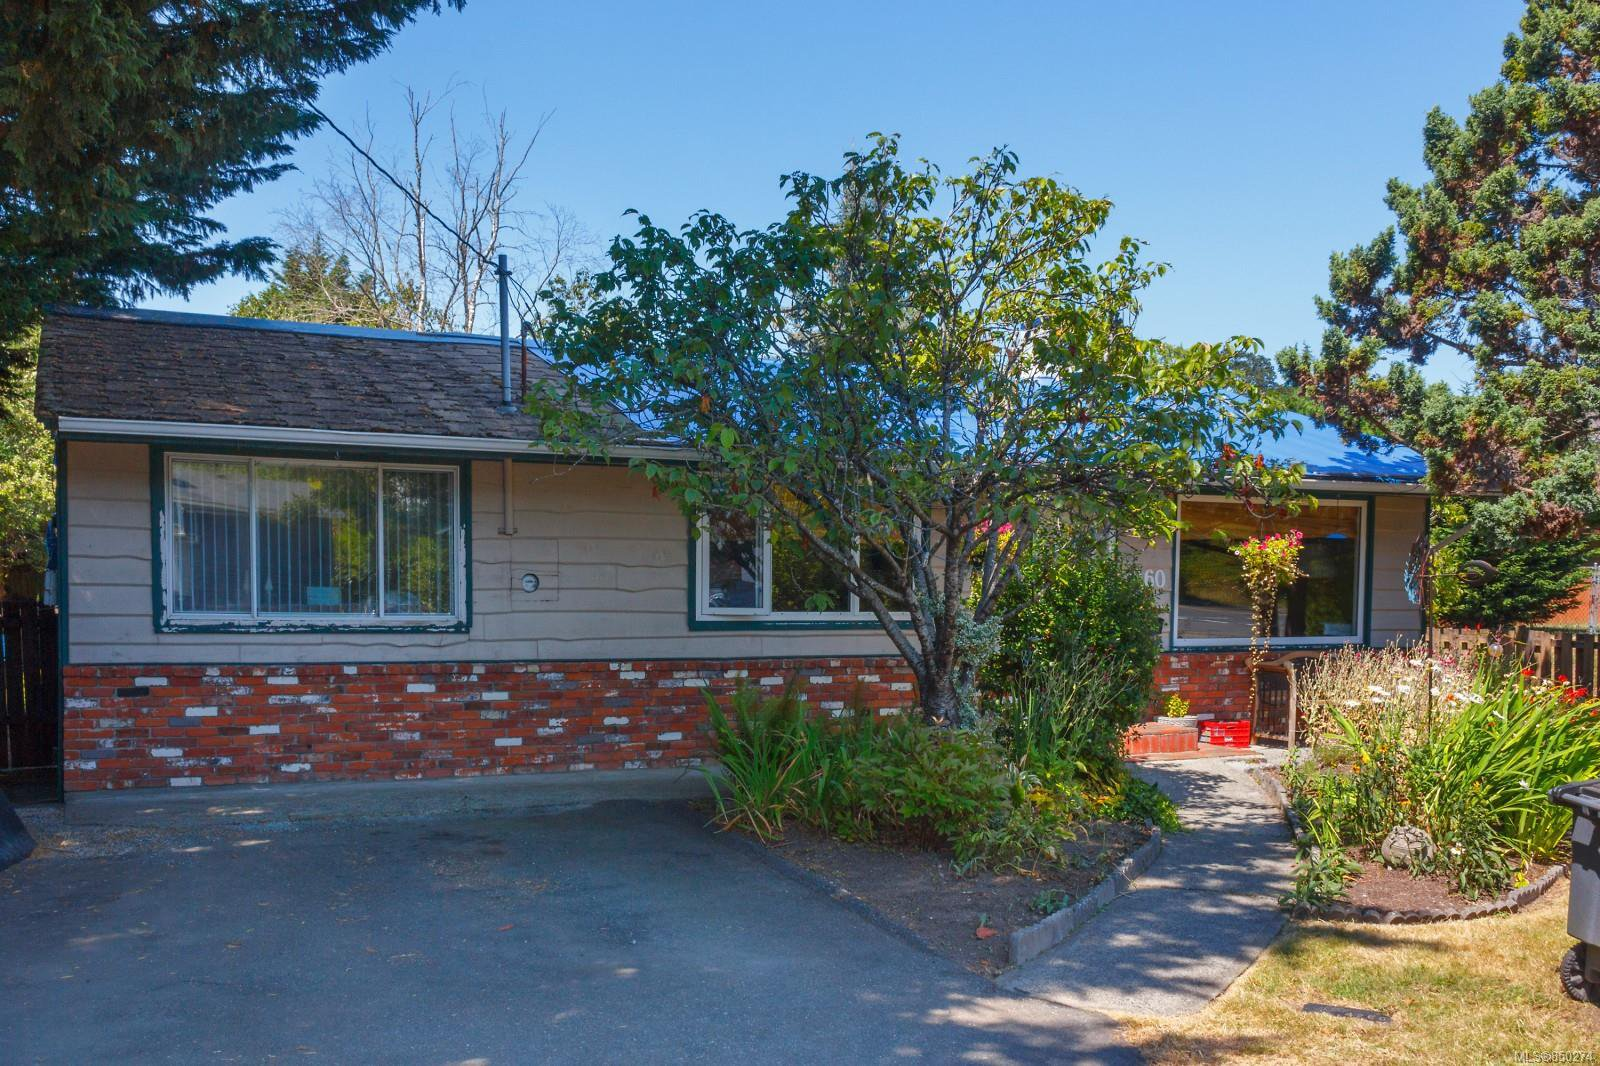 Main Photo: 4260 Wilkinson Rd in : SW Layritz Single Family Detached for sale (Saanich West)  : MLS®# 850274